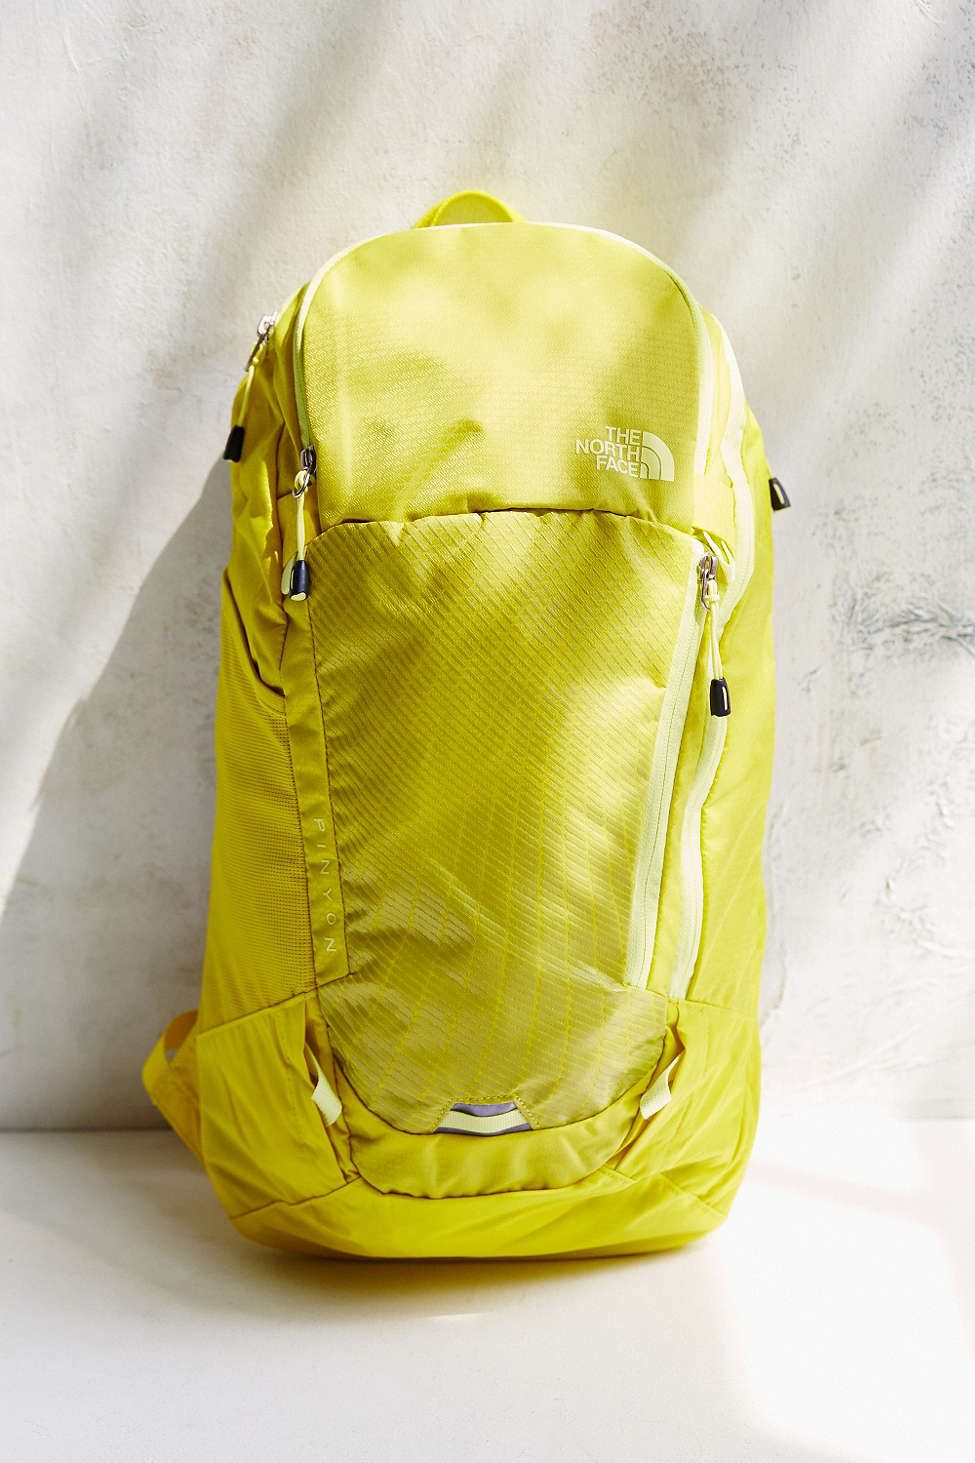 578c01843 The North Face Pinyon Backpack | Want | Backpacks, Fashion backpack ...